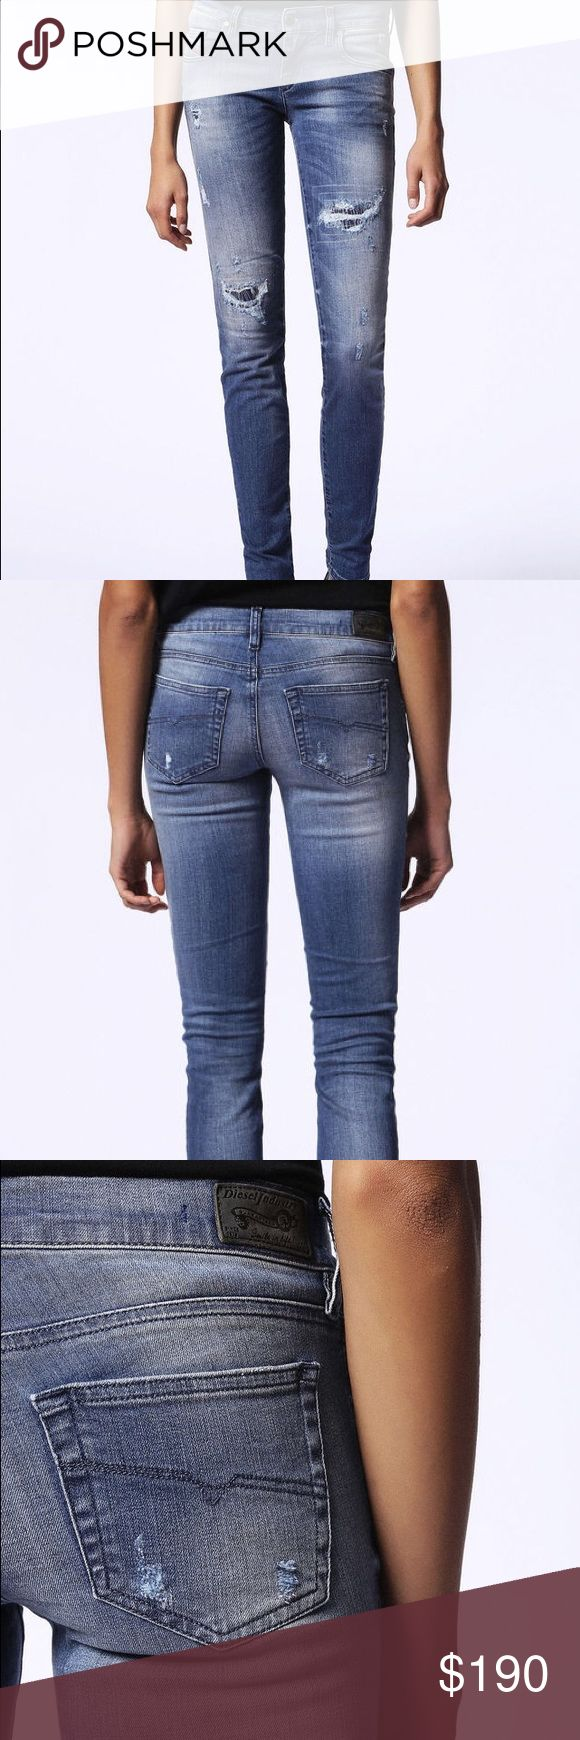 Diesel Denim EUC Sz. W28-L30 Grupee Diesel Denim EUC Style Grupee Wash #0679C Super Slim-Skinny Low Waist with Stretch. Size W28 L30, I normally wear a 27 but I wanted a looser fit since they are Slim-Skinny! ALL Diesel Denim is hand distressed and last forever. Has scan code for AUTHENTICITY. If you have any questions just comment below! Make me an offer! Diesel Pants Skinny